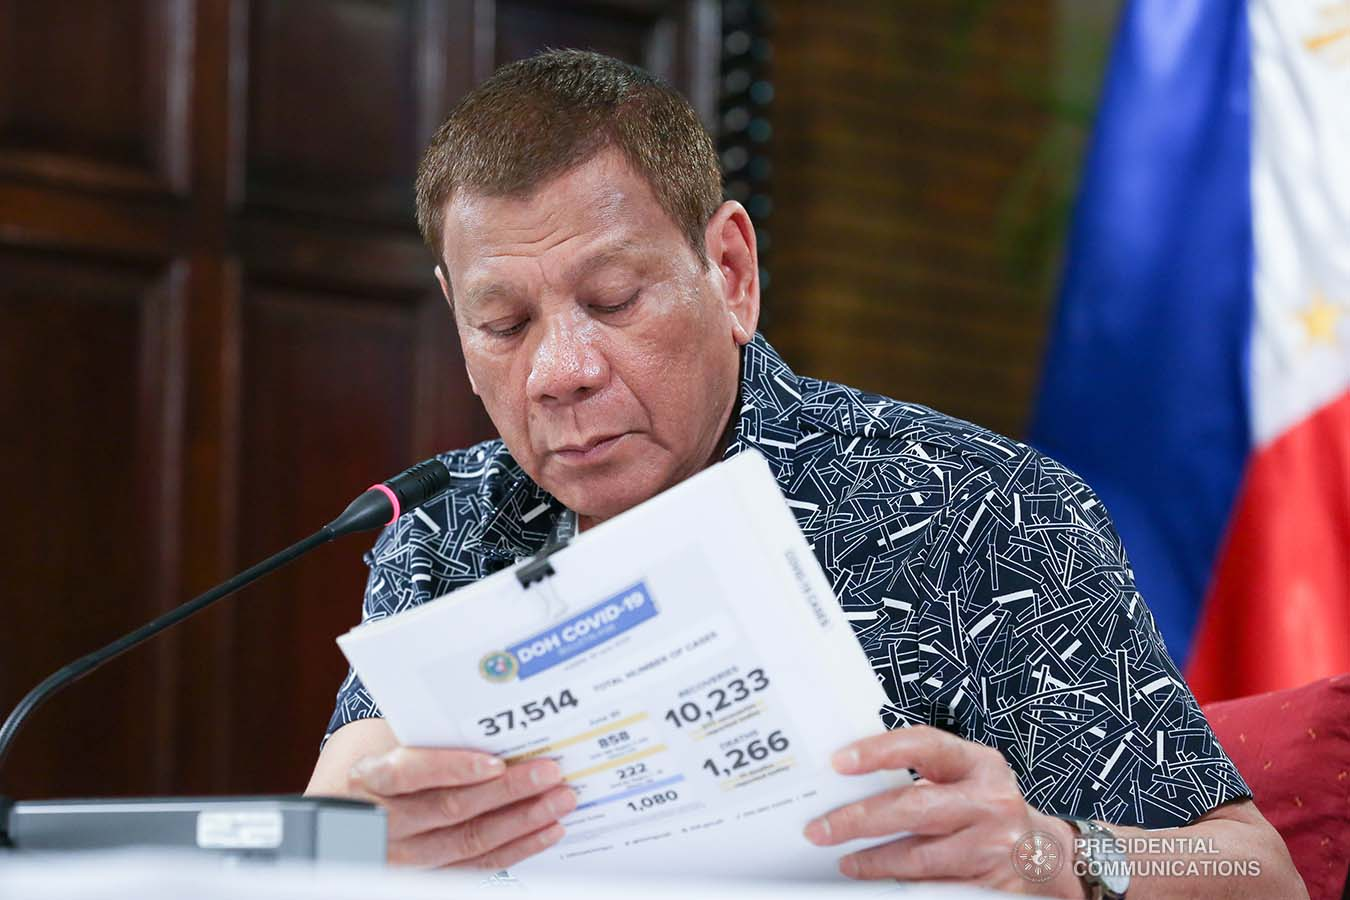 President Rodrigo Roa Duterte reviews a document during a meeting with the Inter-Agency Task Force on the Emerging Infectious Diseases (IATF-EID) core members at the Malago Clubhouse in Malacañang on June 30, 2020. ALBERT ALCAIN/PRESIDENTIAL PHOTO